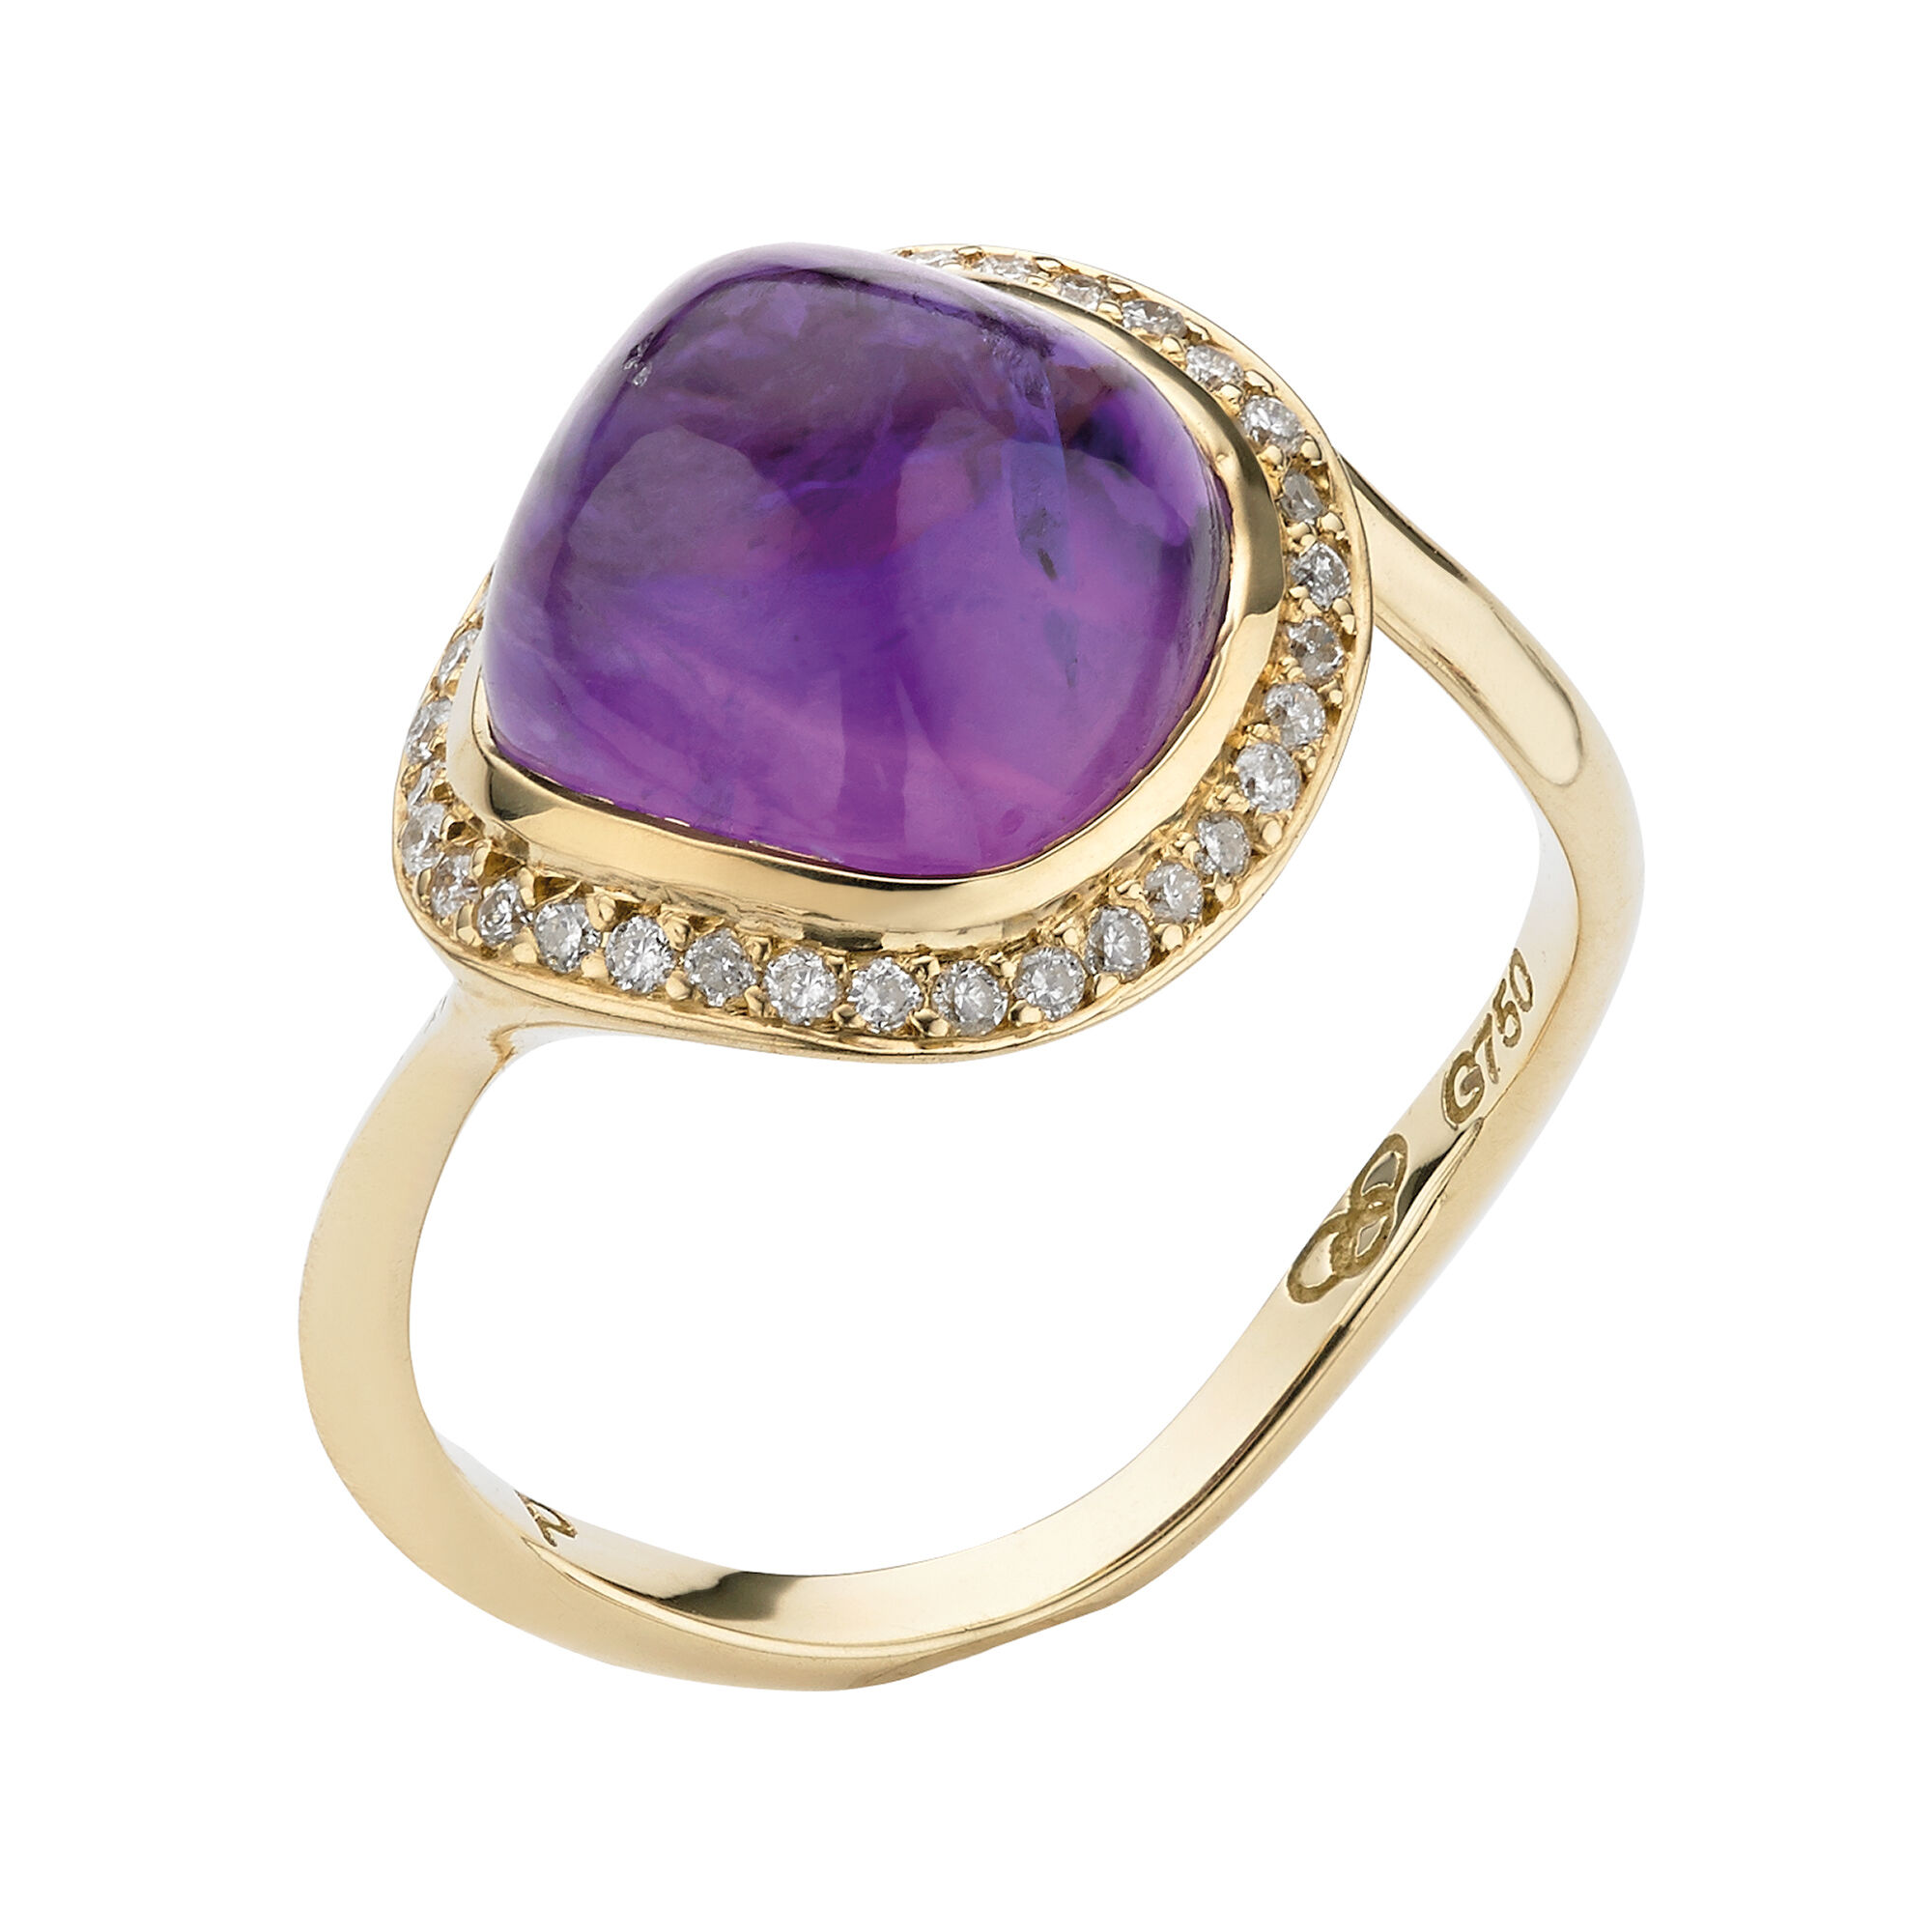 s sapphire rings mauboussin multi ring engagement amethist white women gold amethyst jewelry